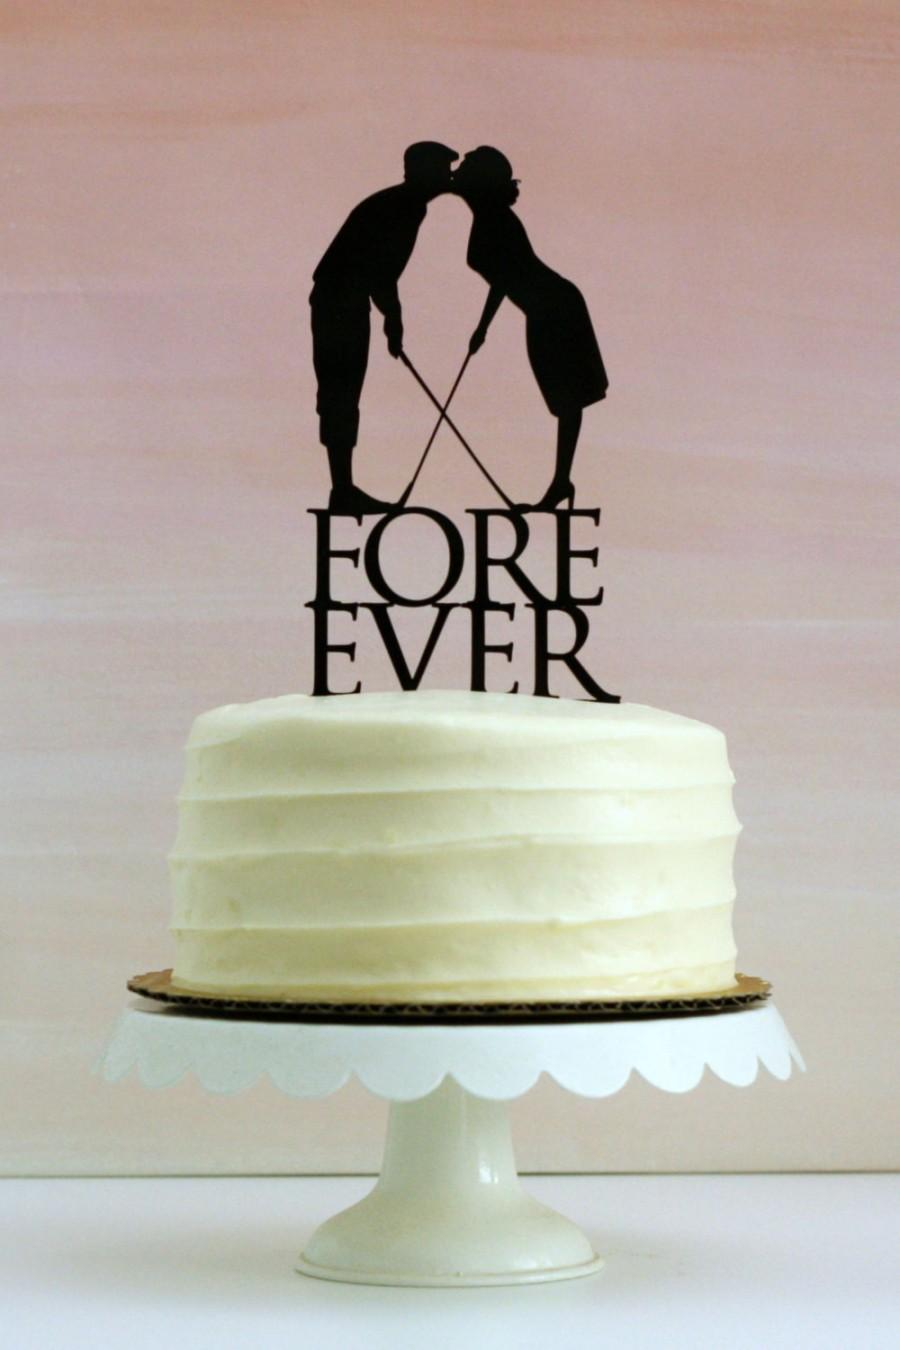 Свадьба - Fore Ever Golf Wedding Cake Topper with Silhouettes - MADE TO ORDER - Customizable